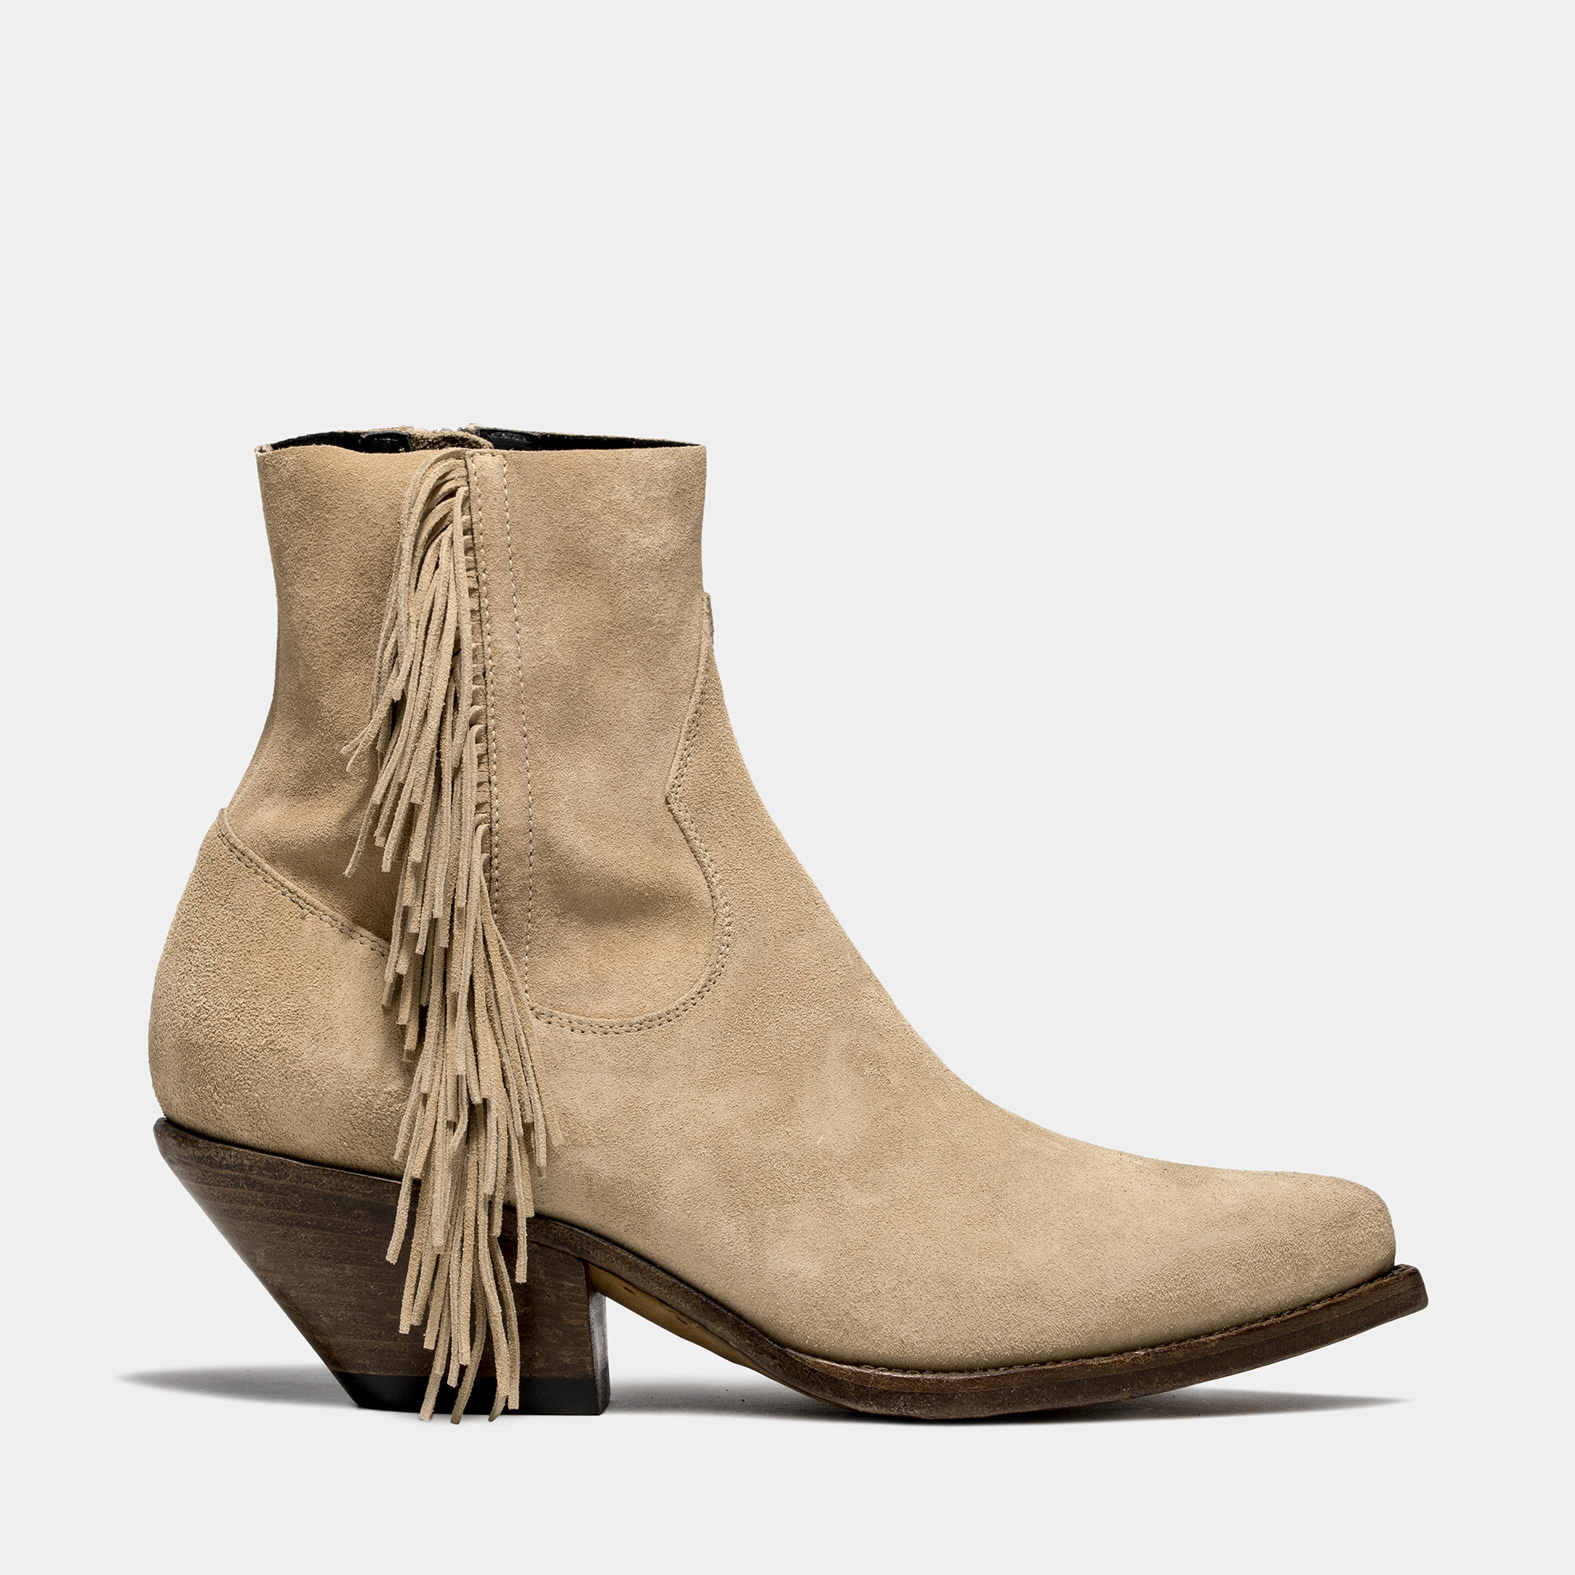 BUTTERO: ELISE LOW TOP DURANGO BOOTS IN SUEDE COLOR CAPPUCCINO WITH FRINGES